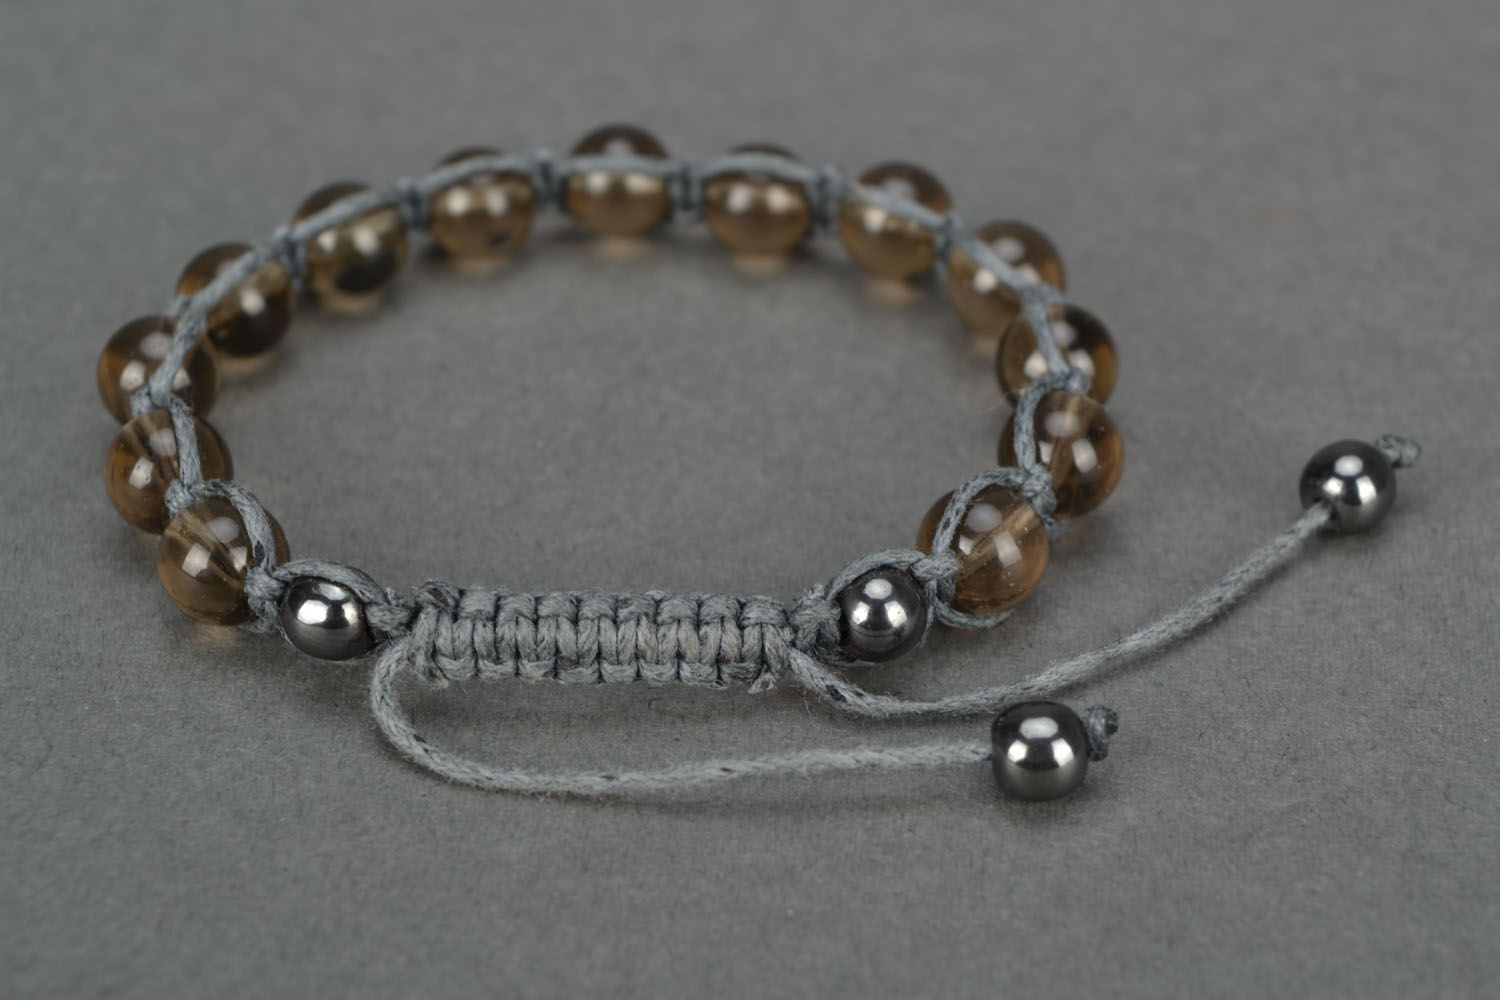 Bracelet woven of beads and cord photo 4